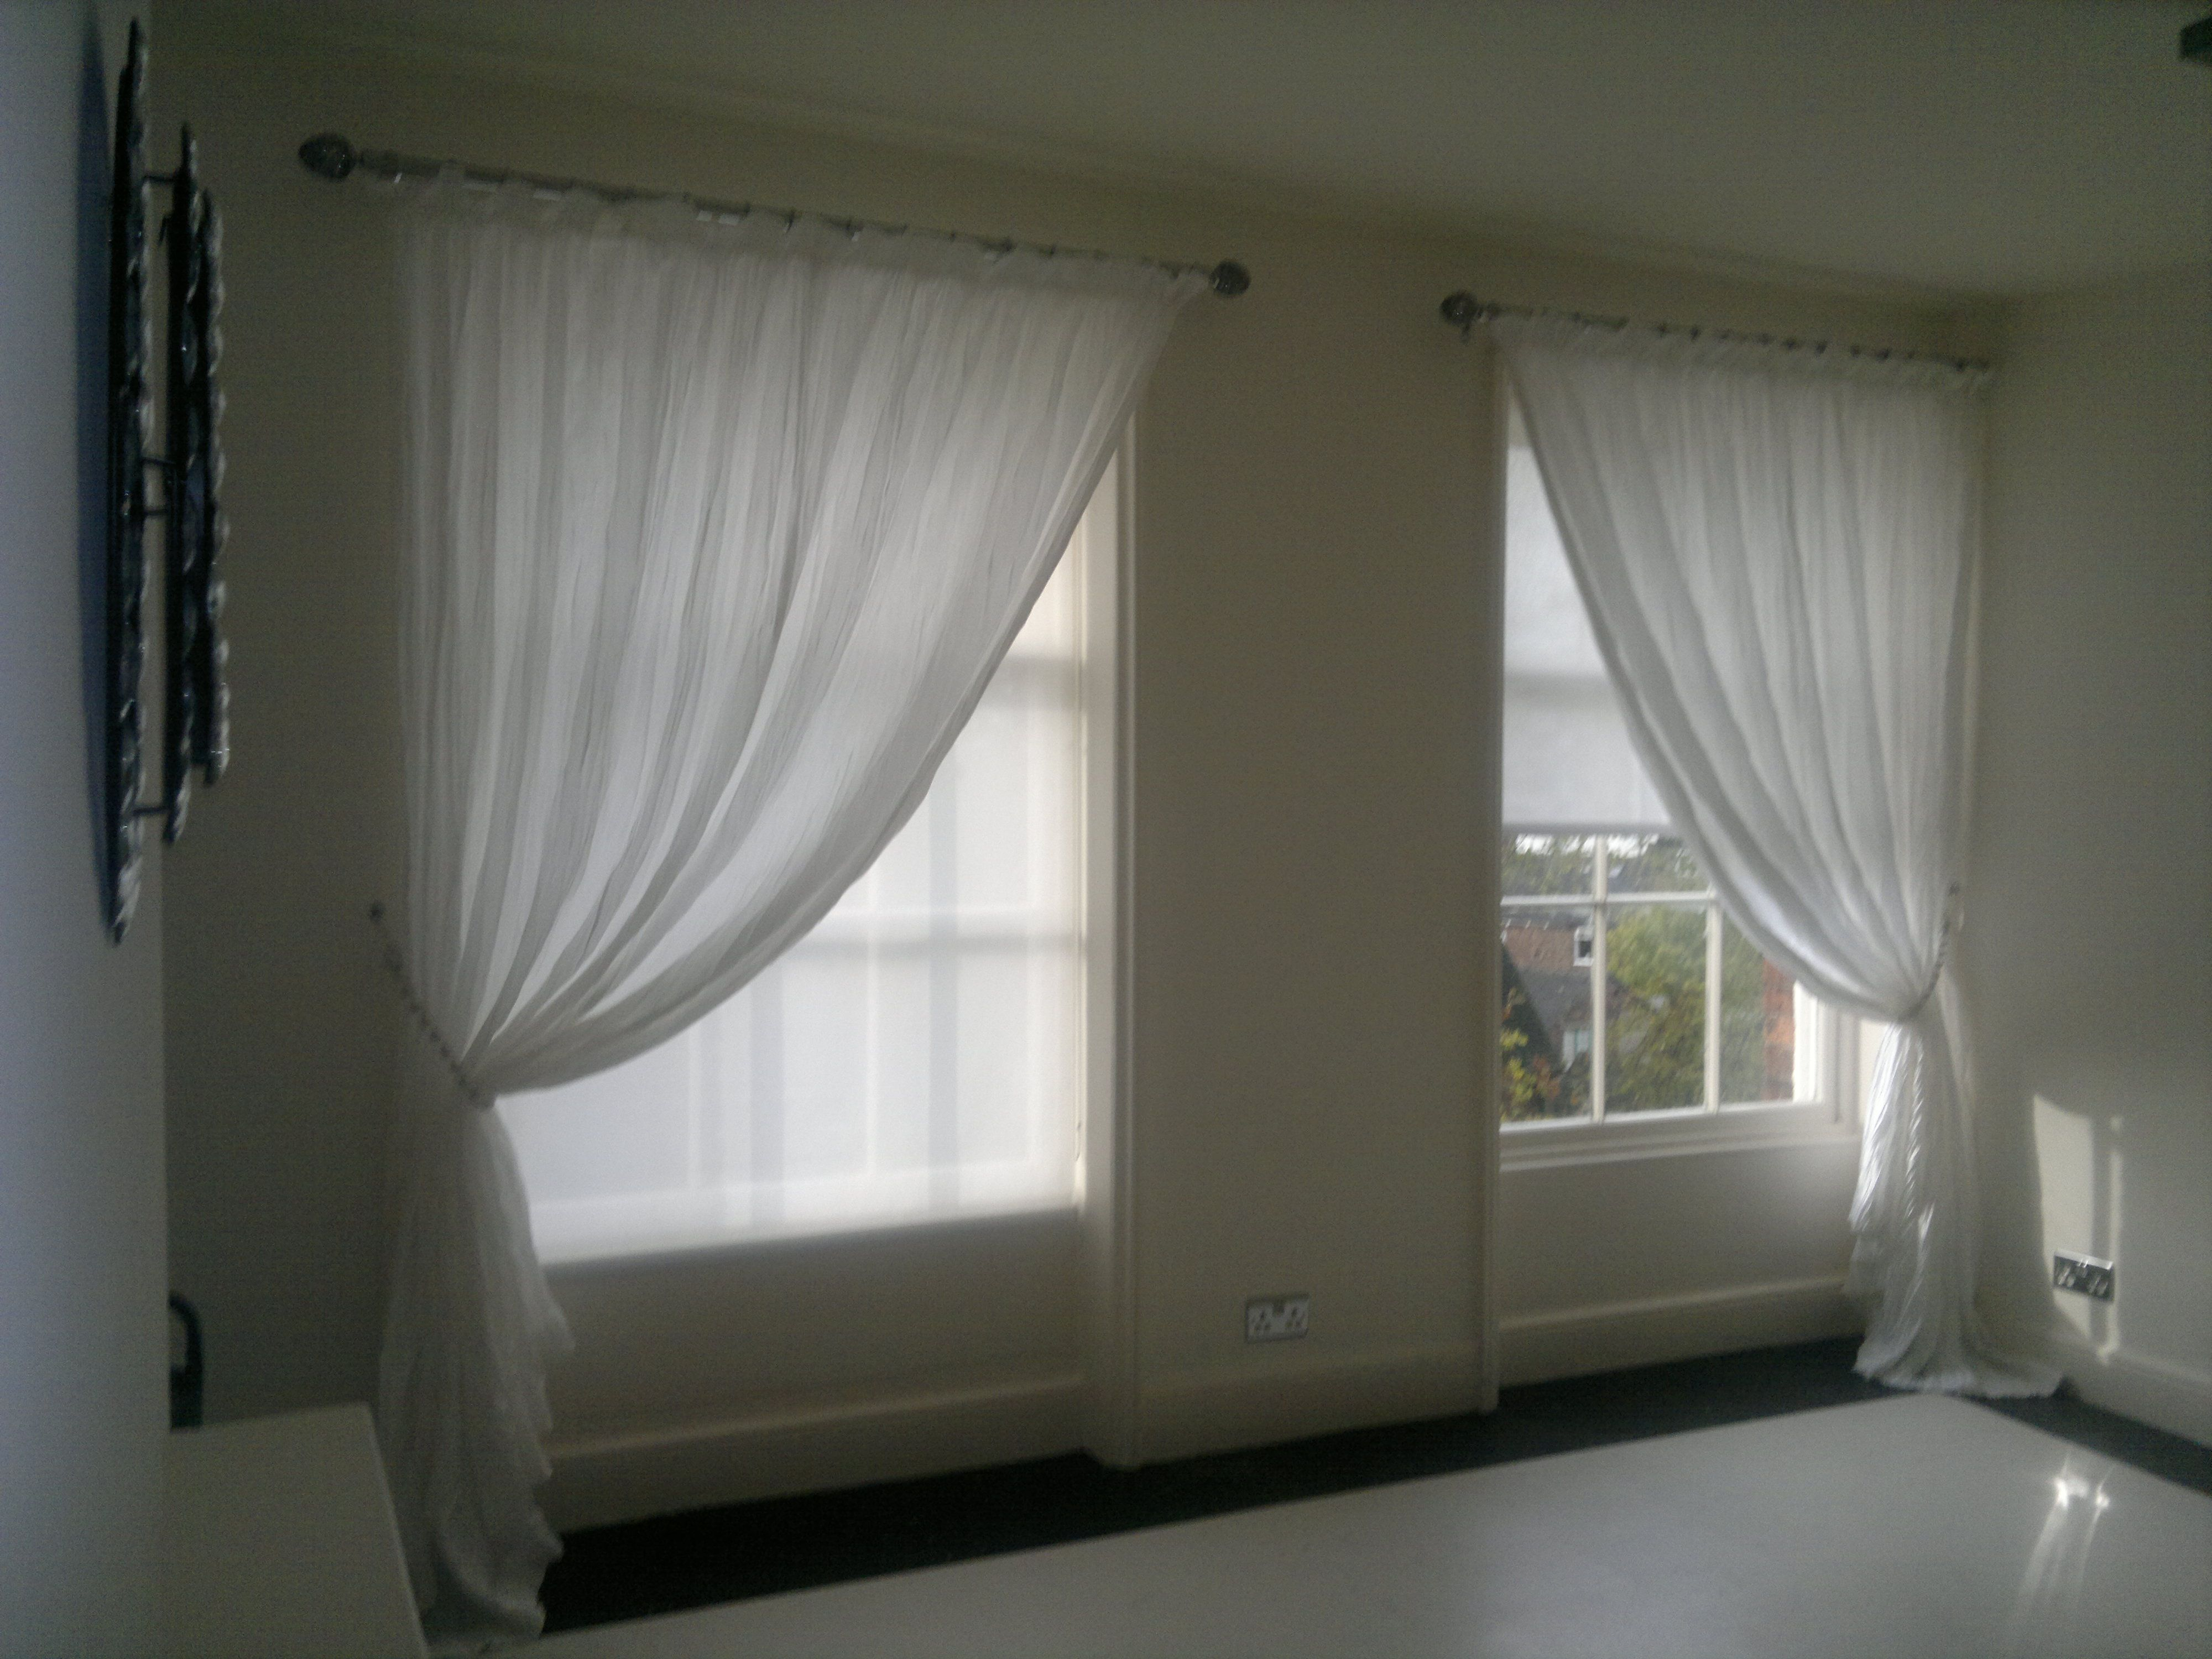 Sheer voiles are mounted over functional roller blinds a single